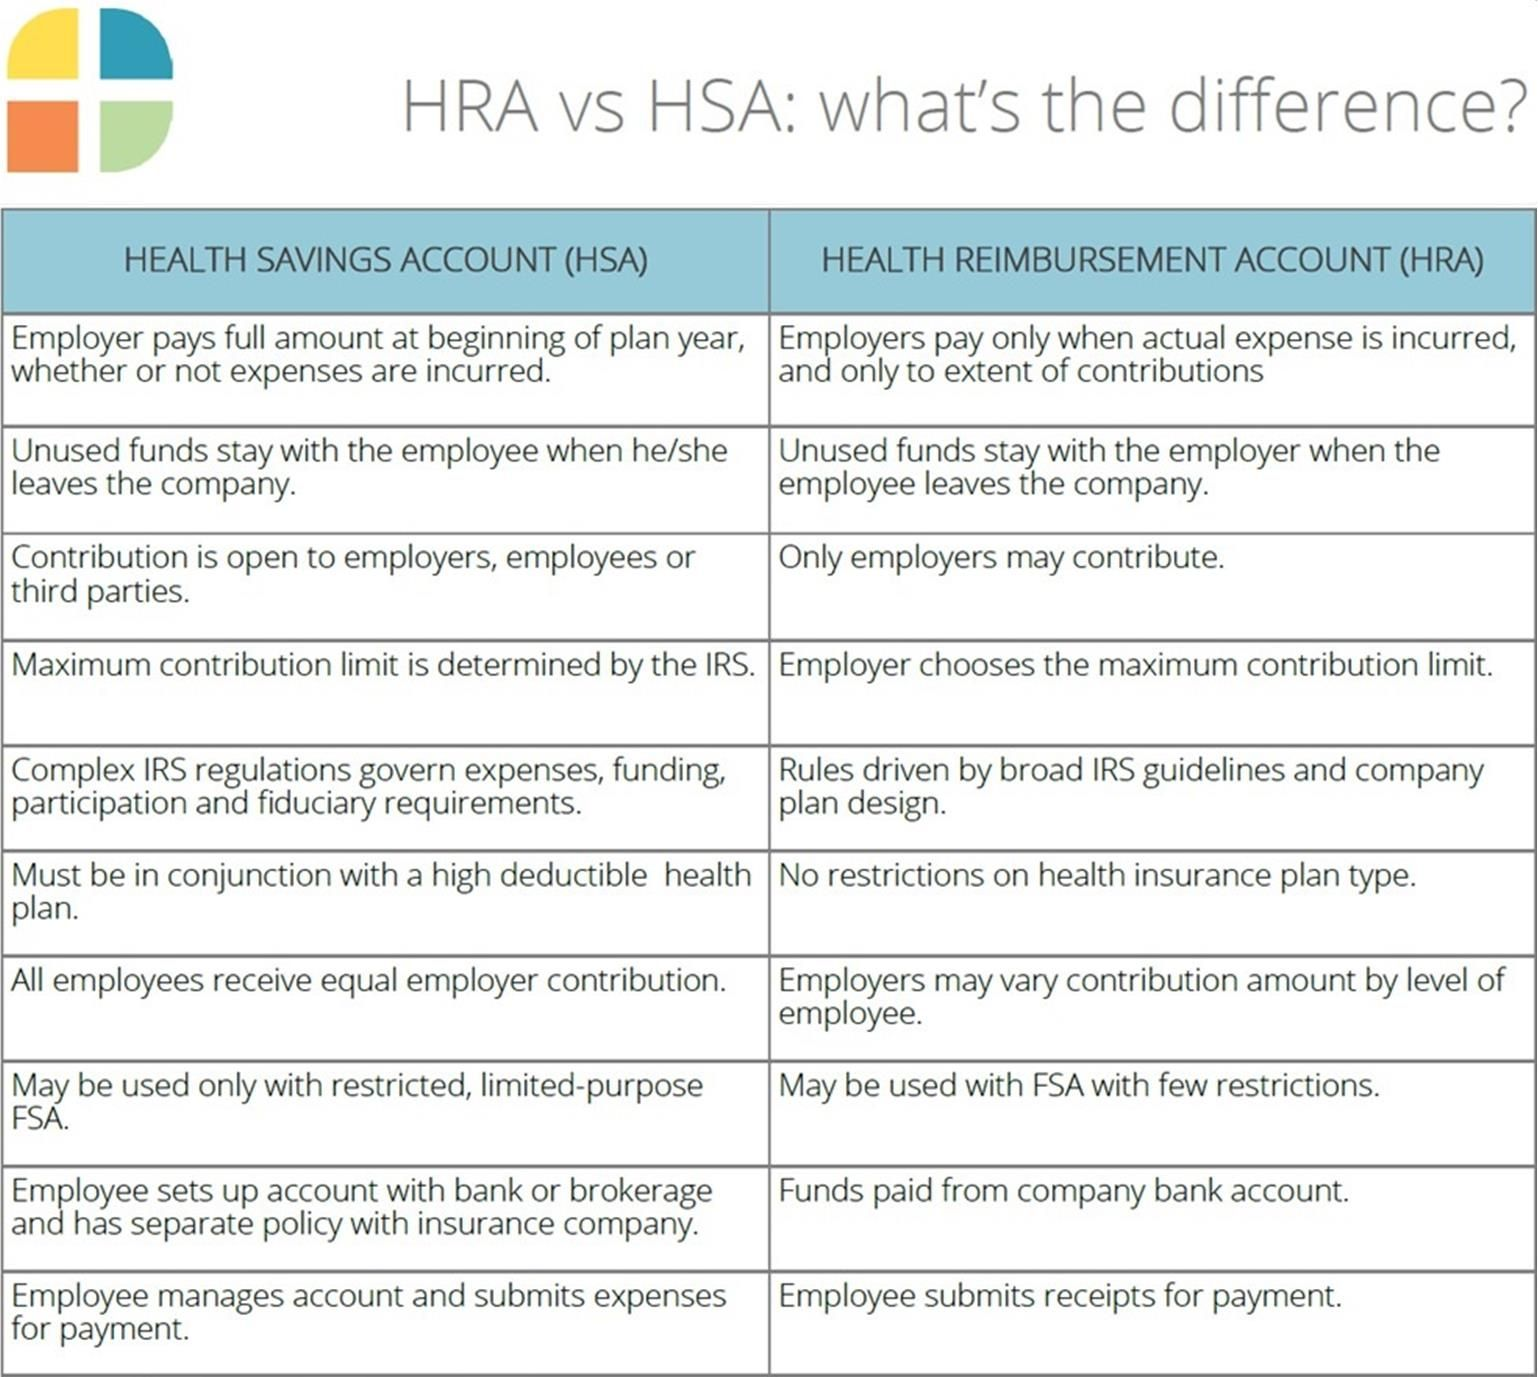 Hras And Hsas Defined Health Savings Account High Deductible Health Plan Health Plan